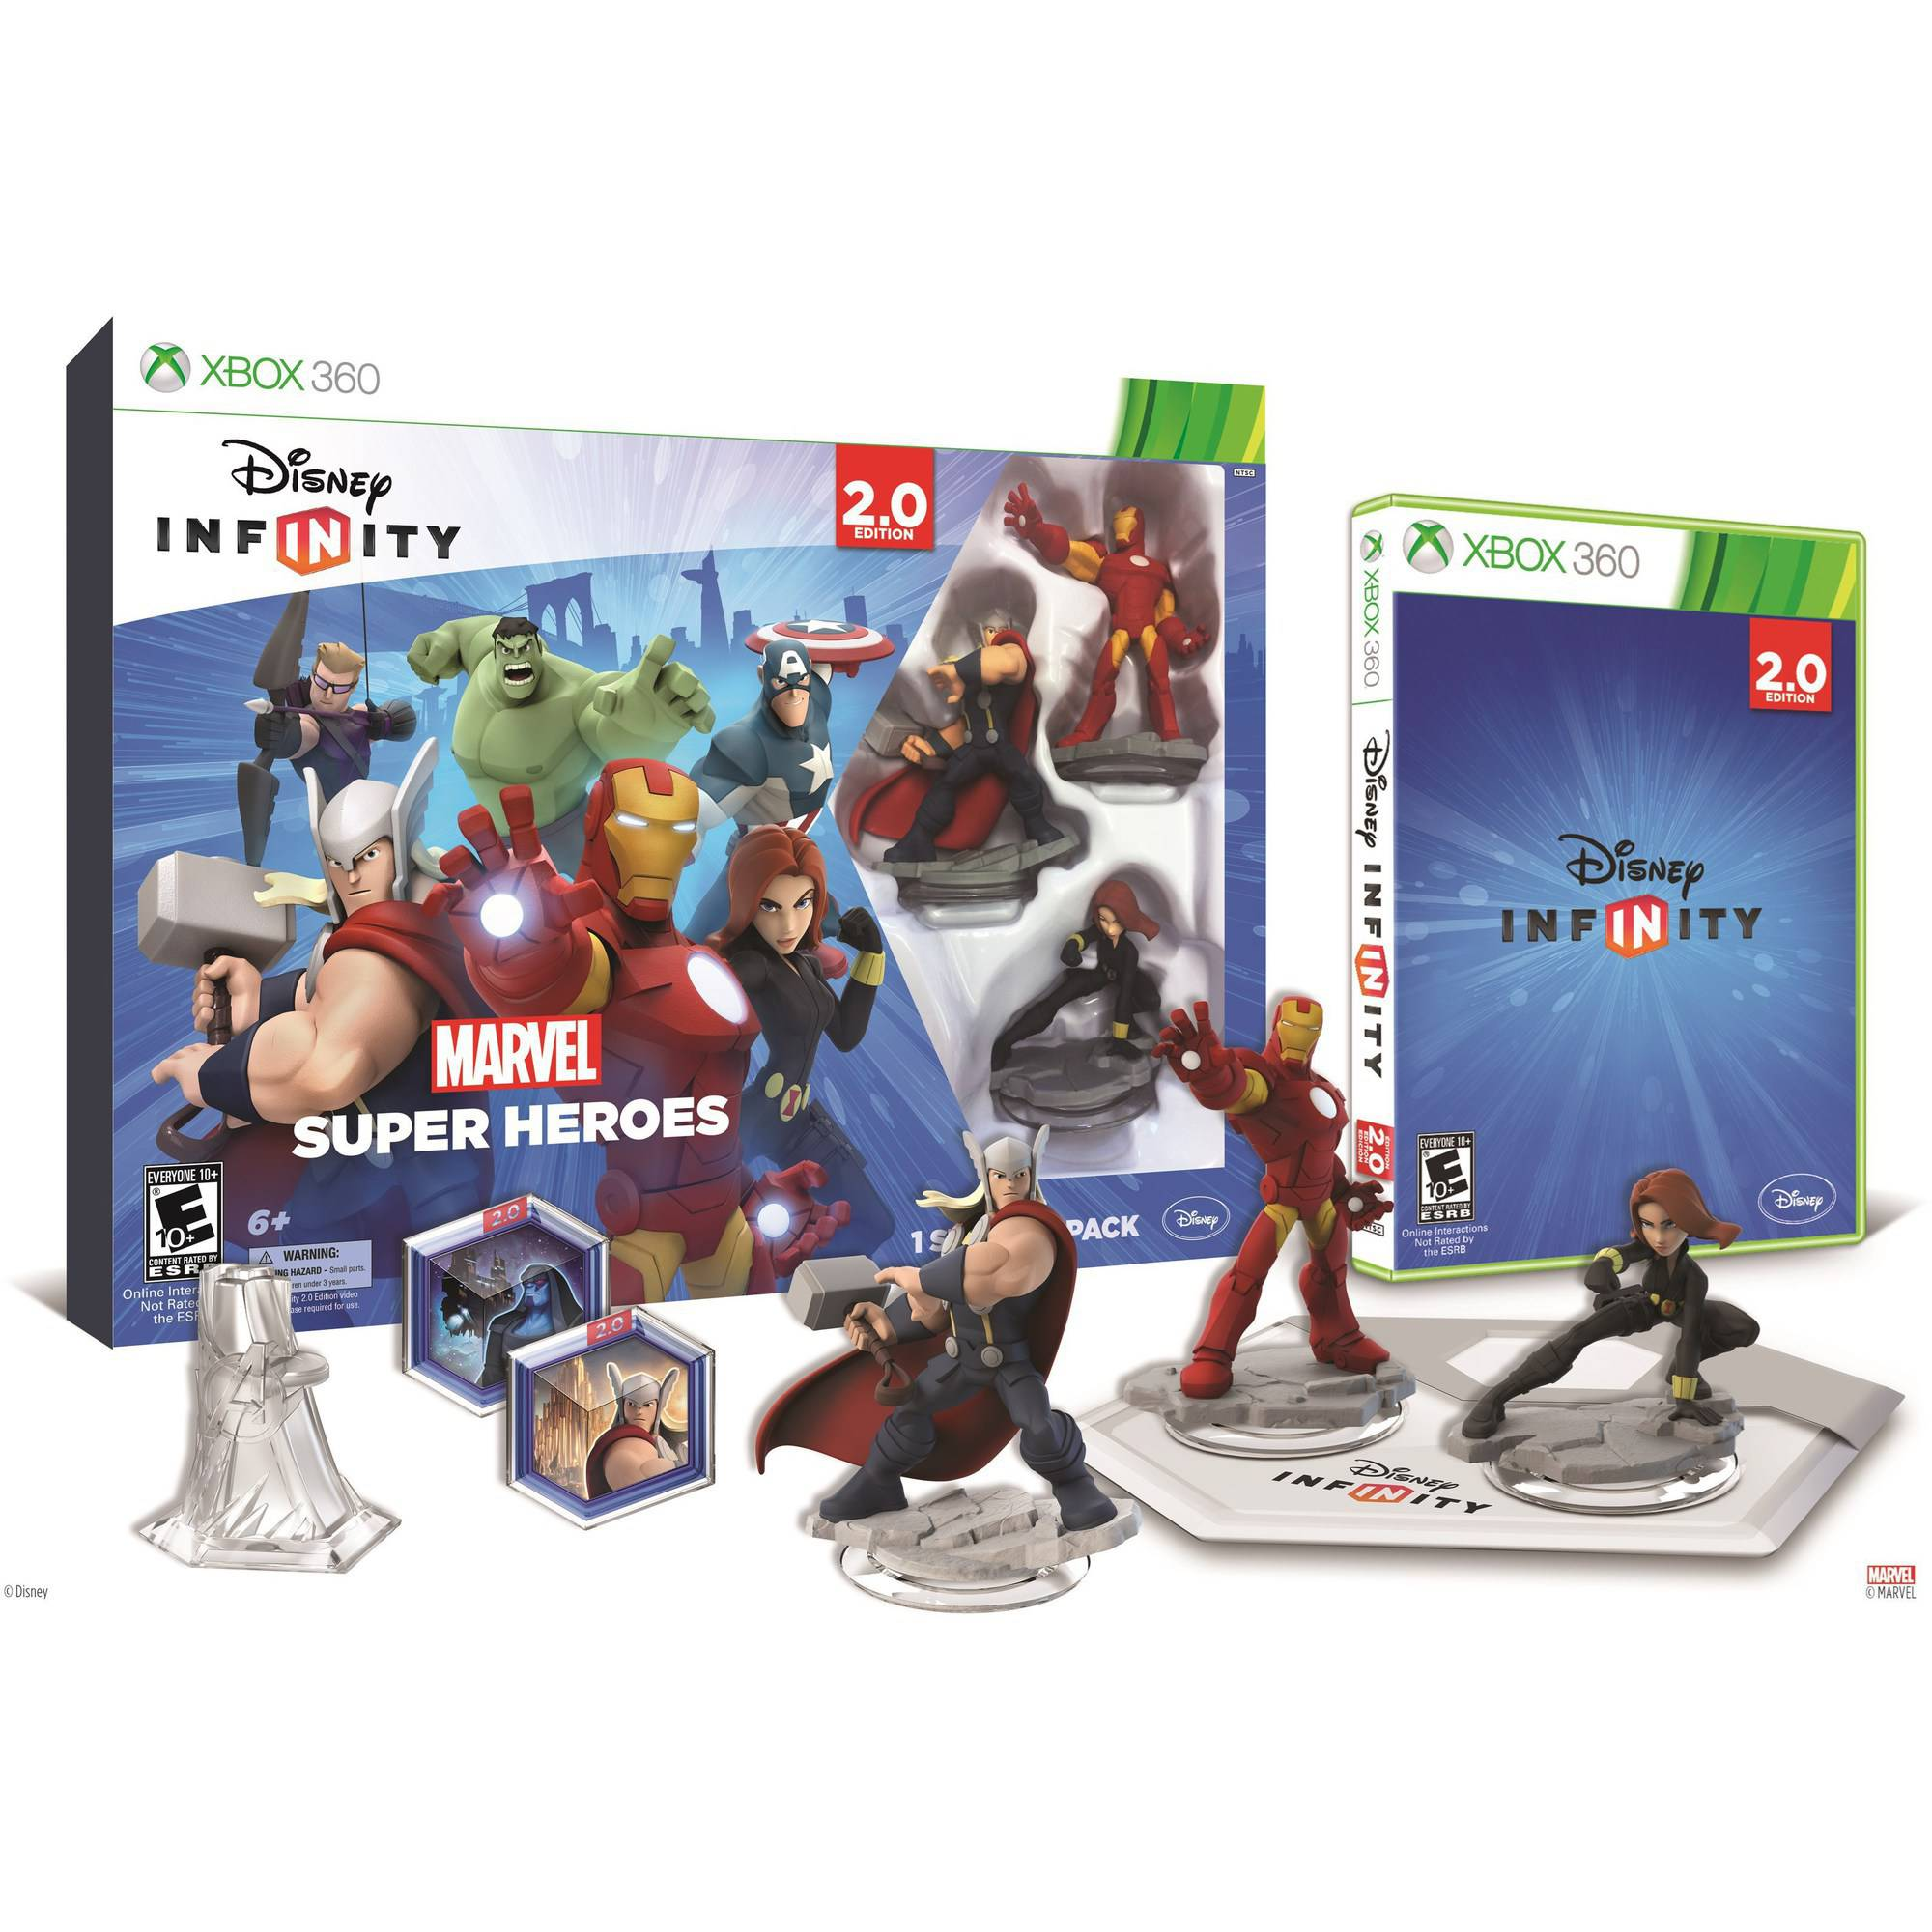 Disney Infinity: Marvel Super Heroes (2.0 Edition) Video Game Starter Pack (Xbox 360)